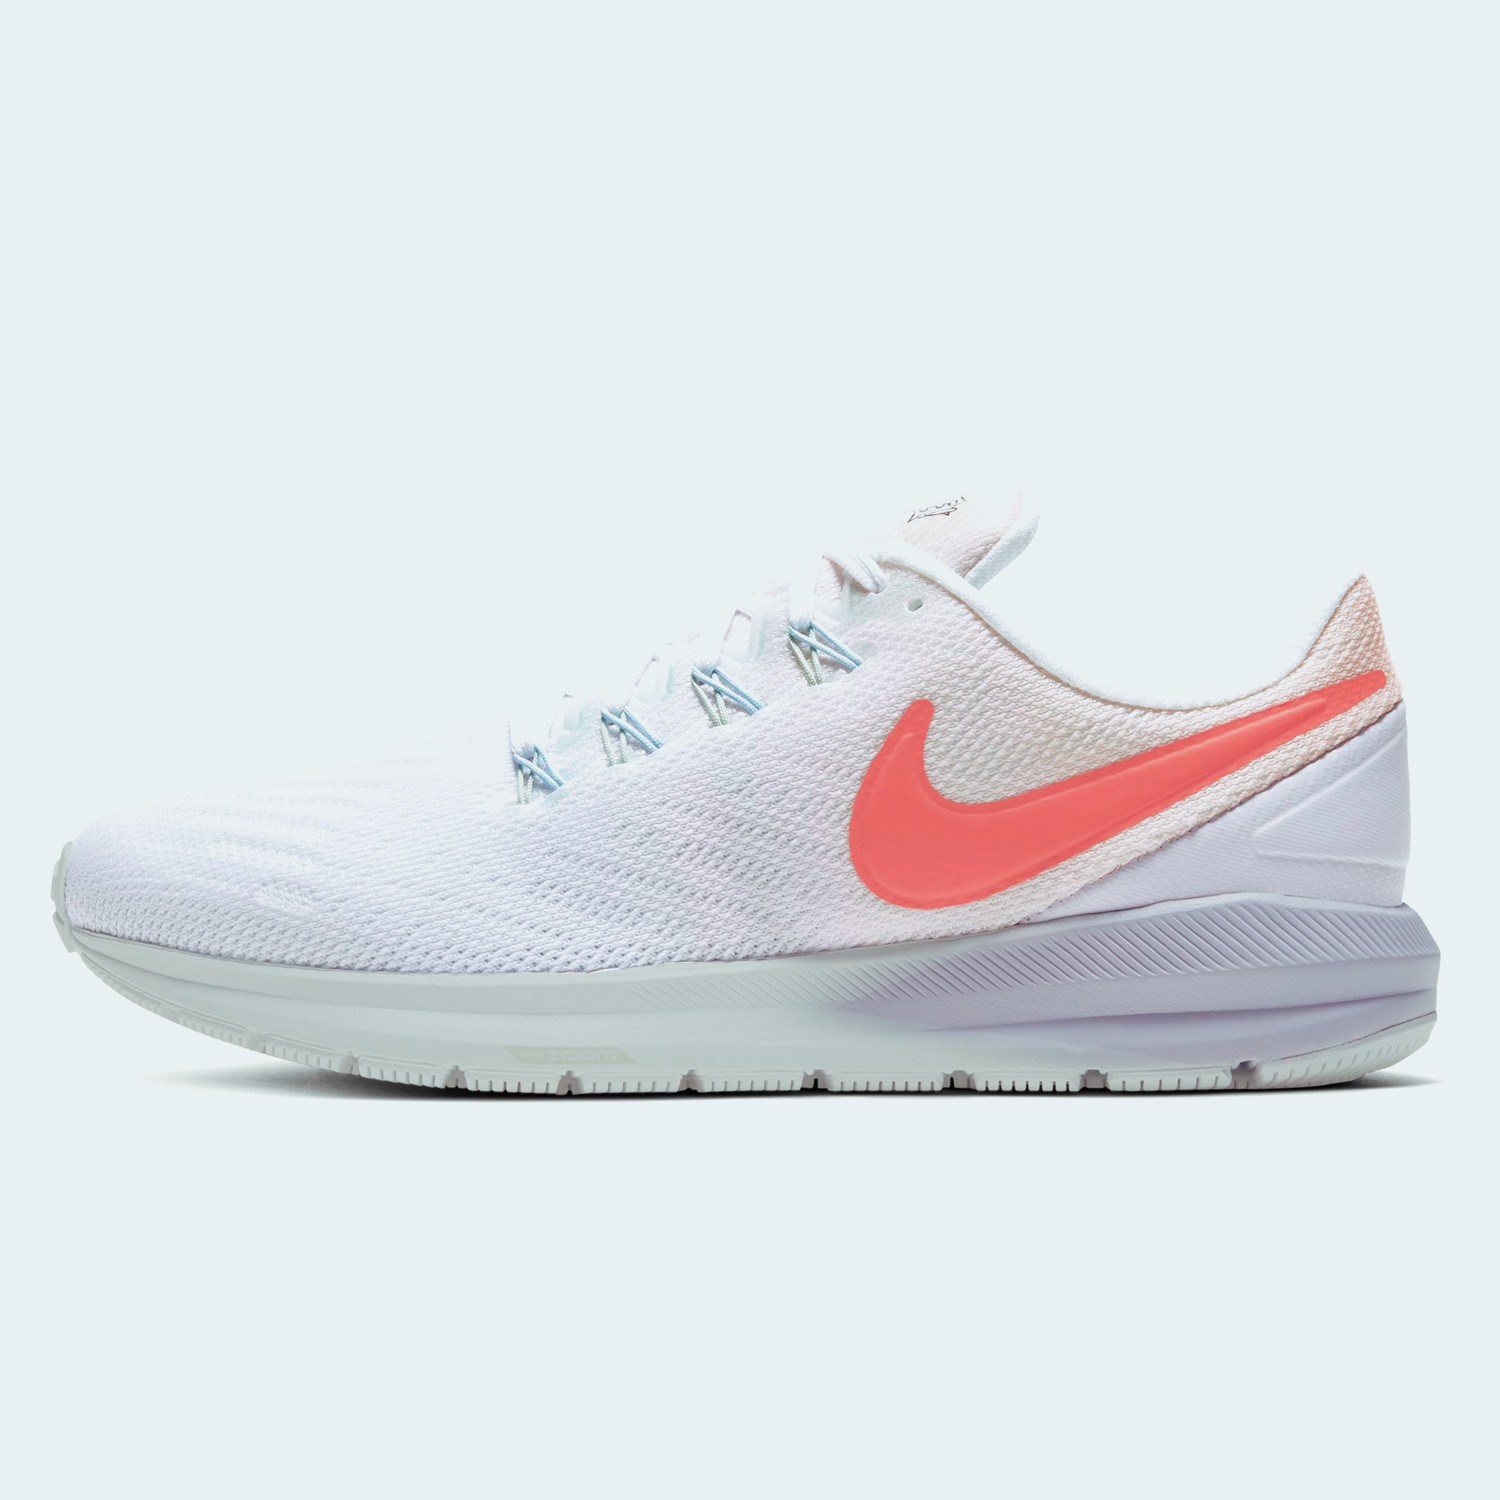 Nike Air Zoom Structure 22 Γυναικεία Παπούτσια (9000061618_48442)